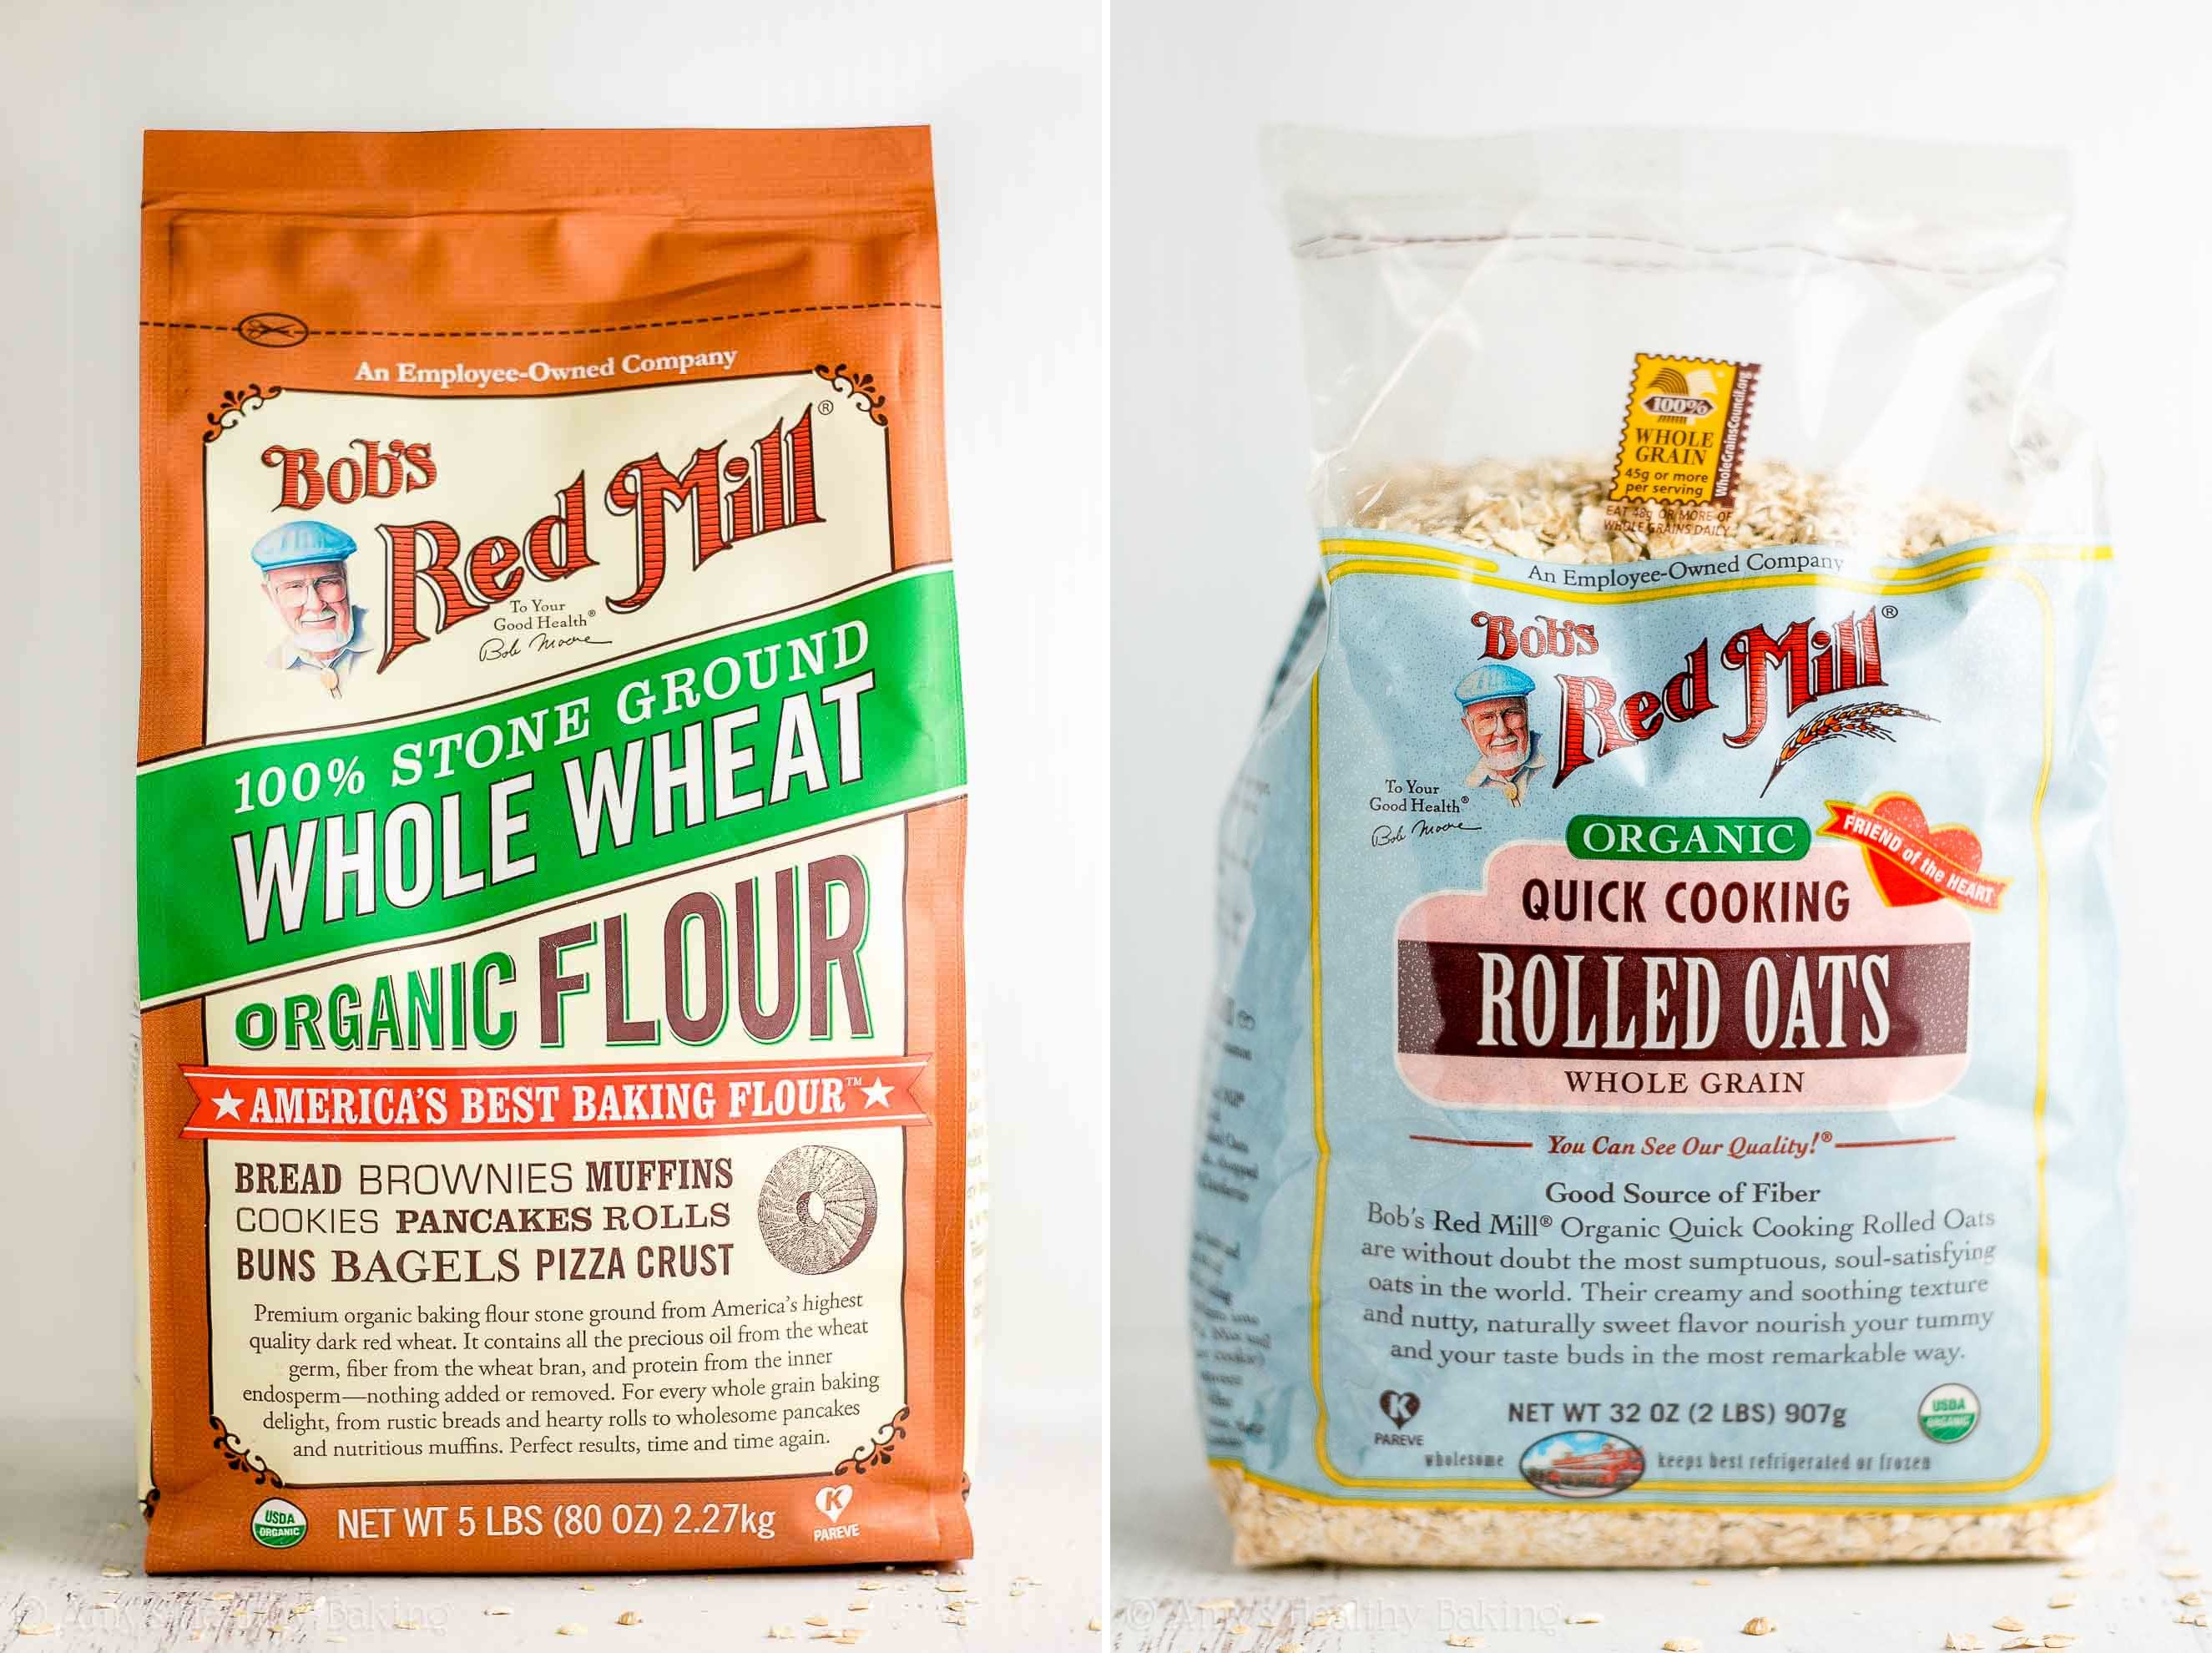 Bags of Bob's Red Mill whole wheat flour and quick cooking oats